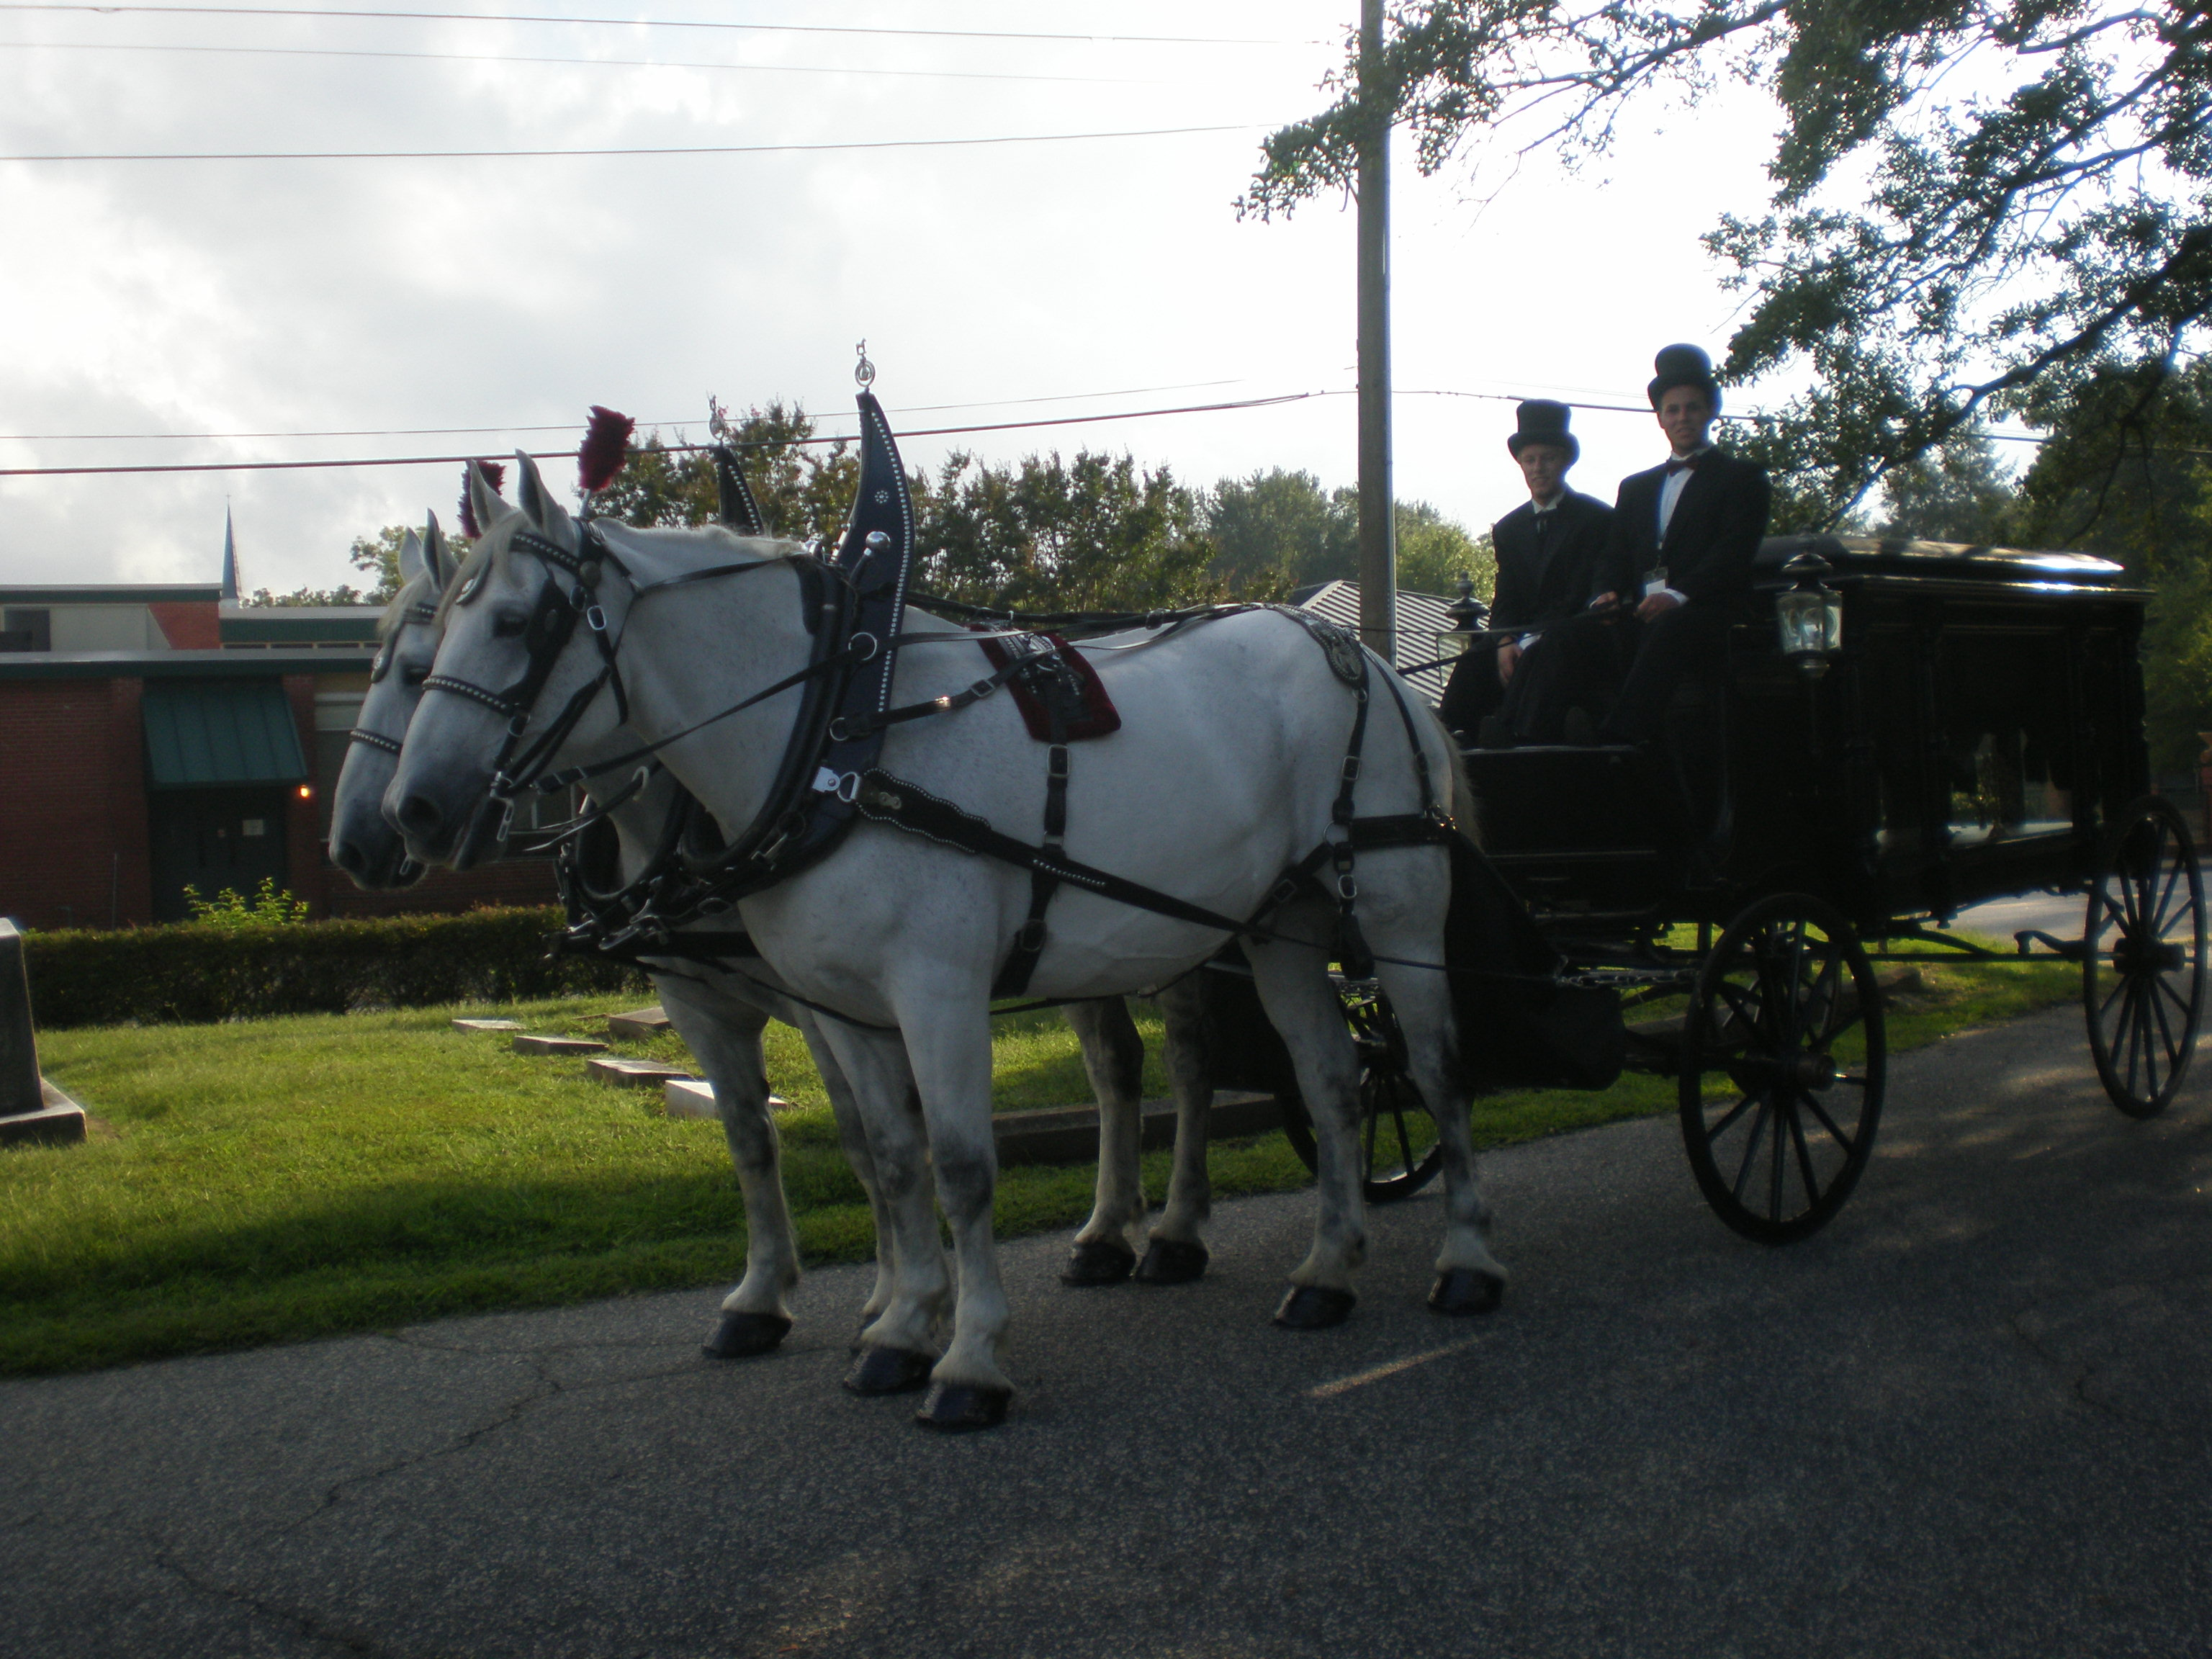 Family+and+carriage+pics-0424